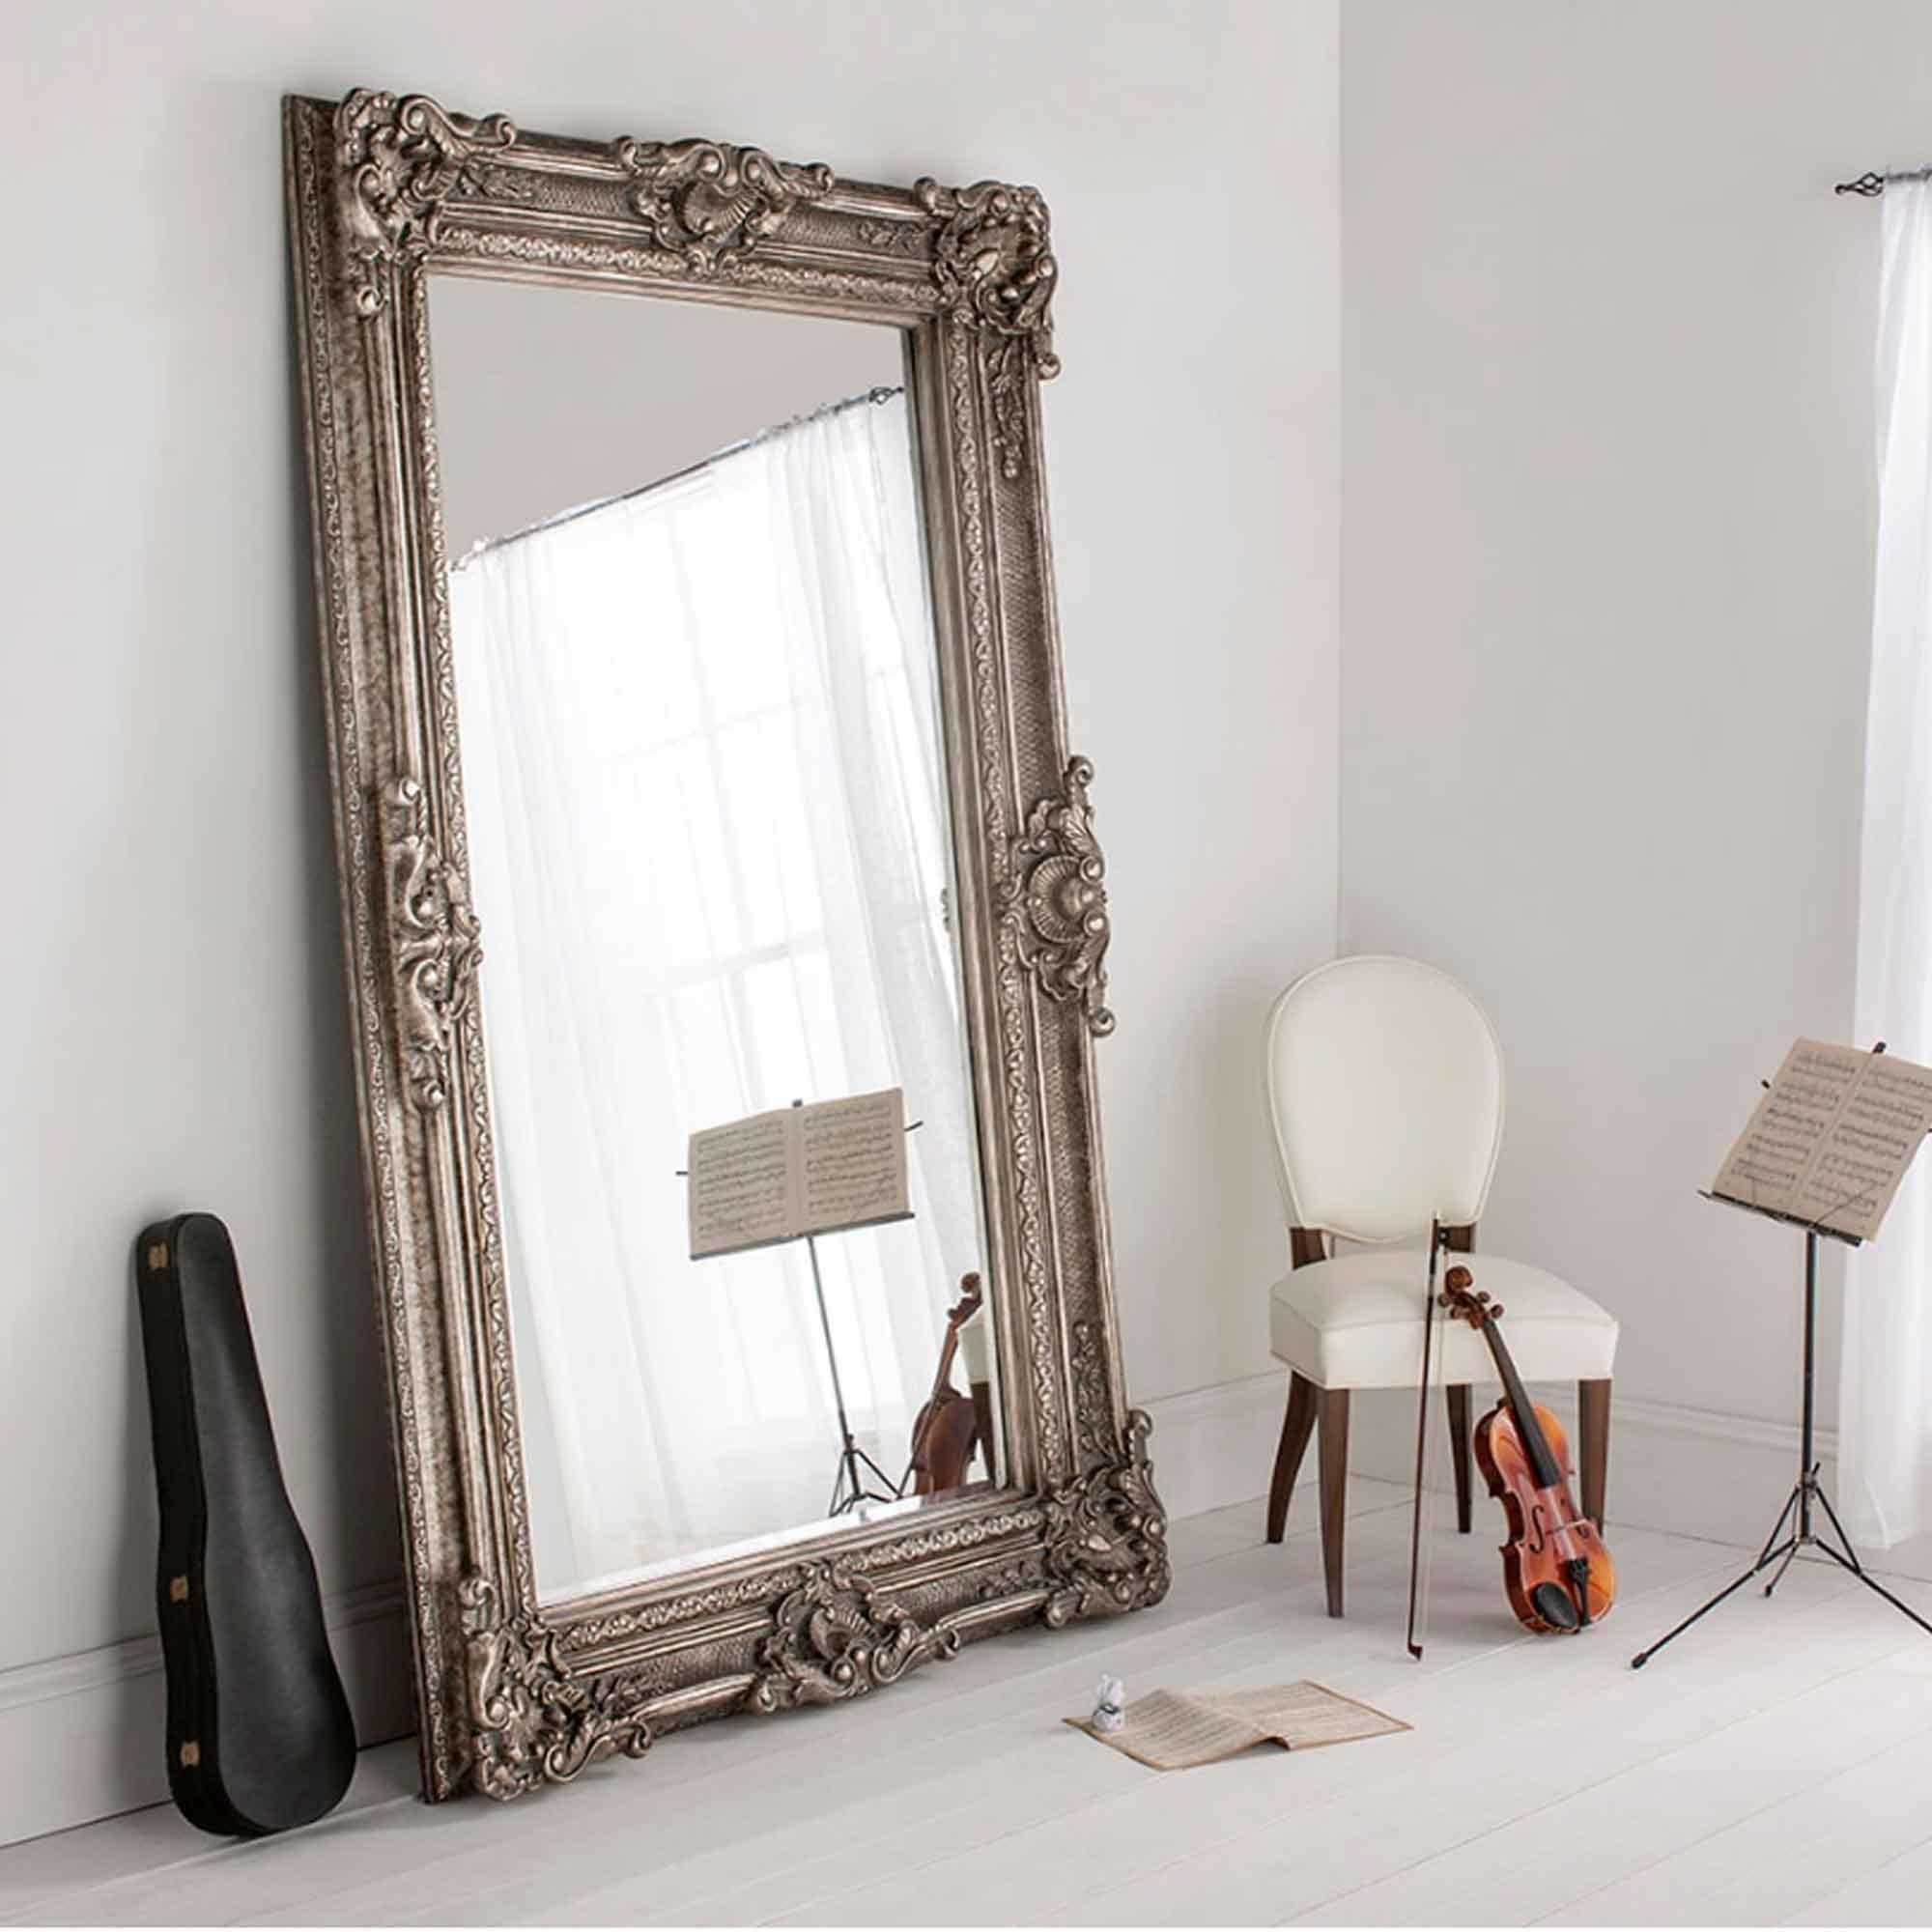 Extra Large Floor Standing Mirror Uk | Floor Decoration Throughout Extra Large Floor Standing Mirrors (Image 11 of 20)